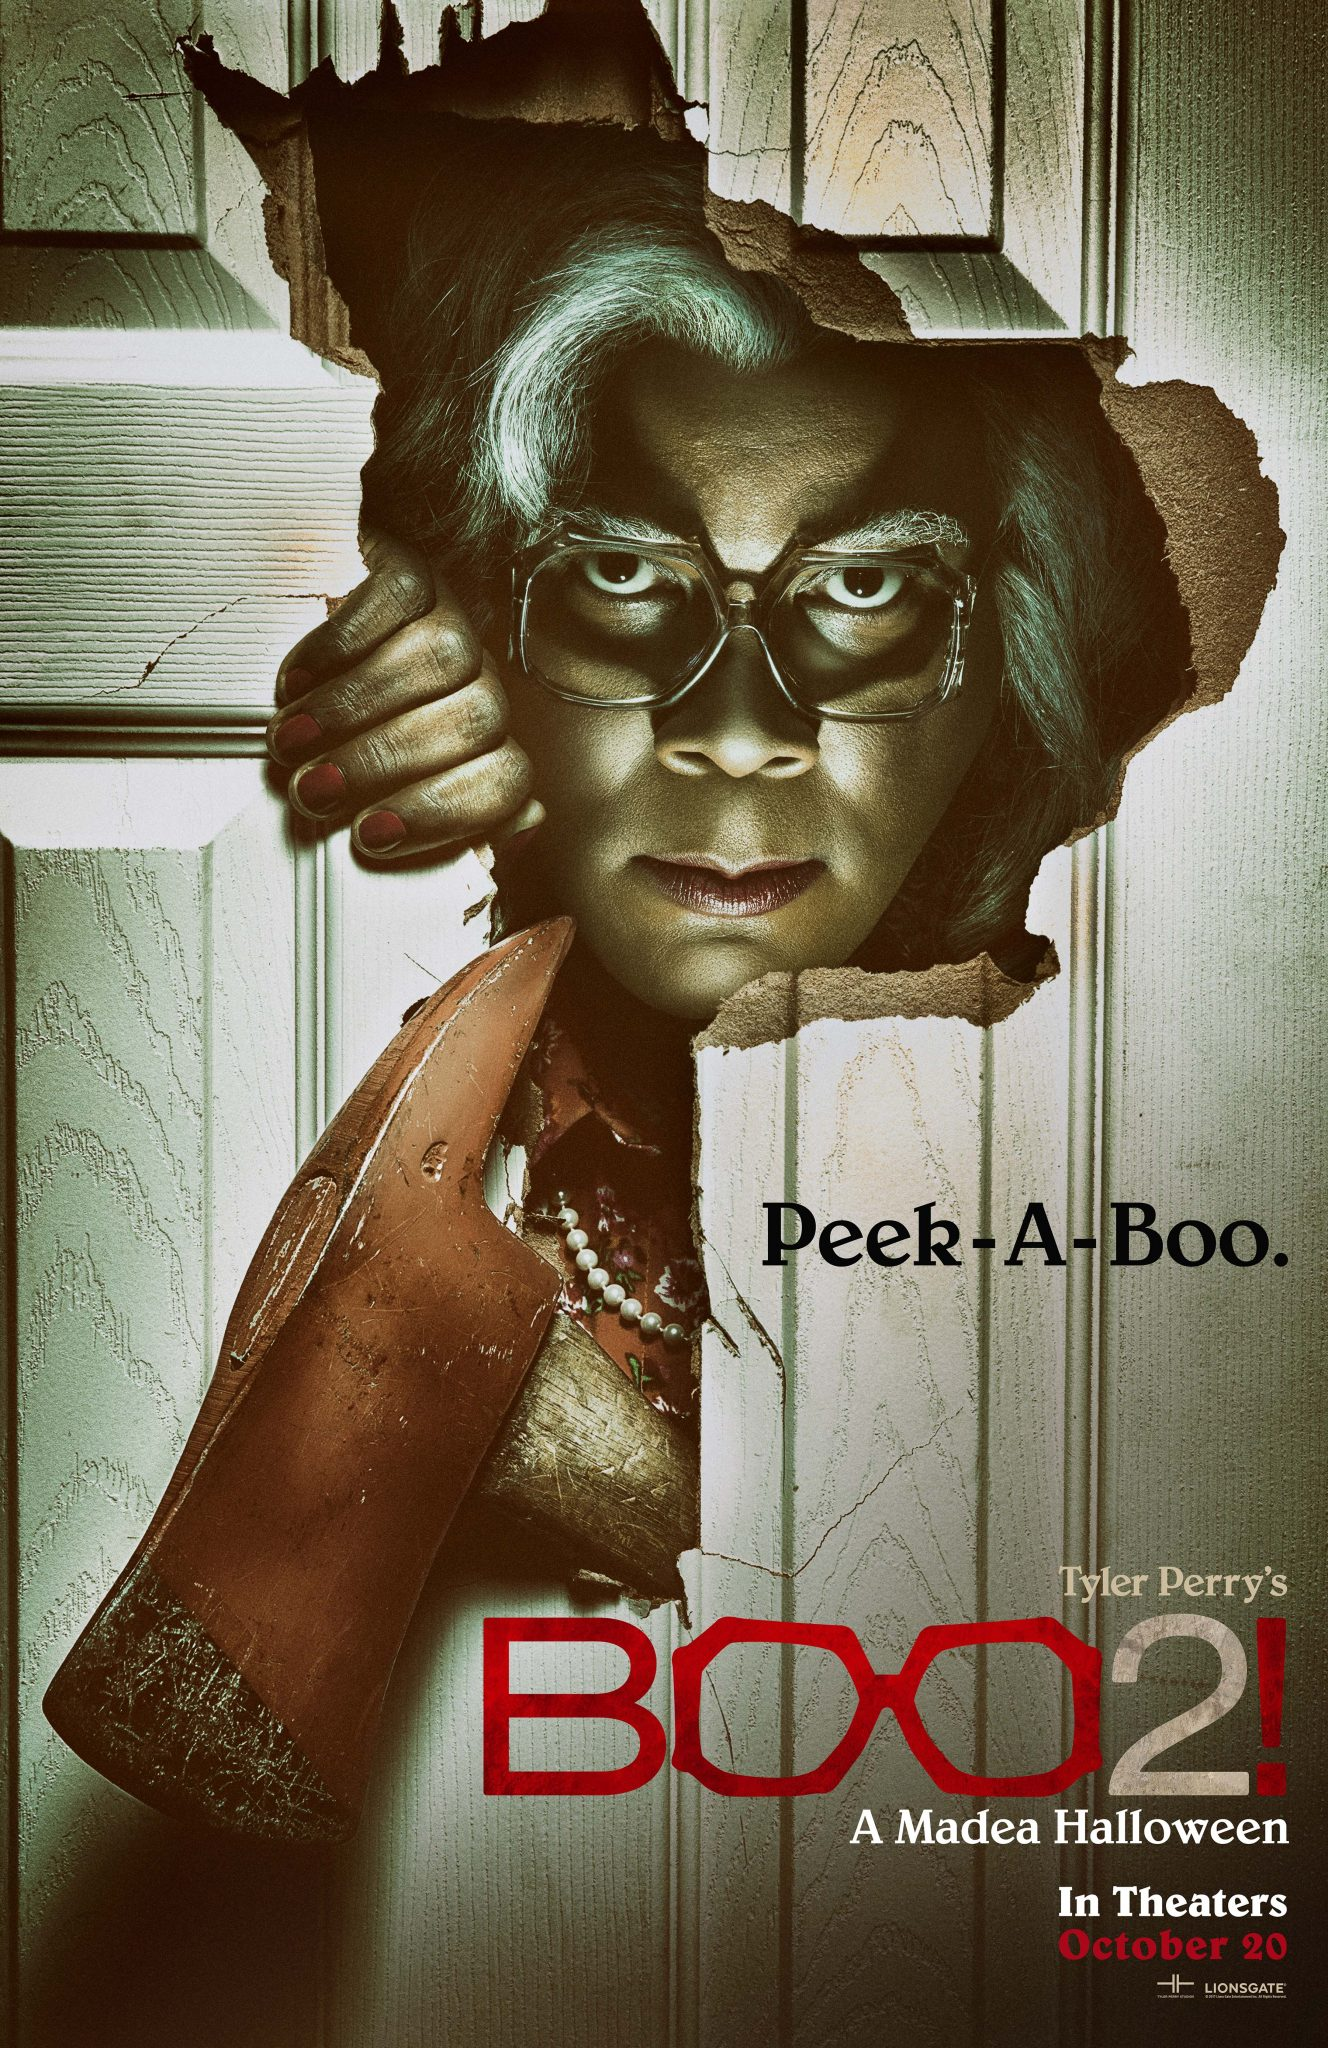 New Movie: Tyler Perry's Boo 2 A Madea Halloween